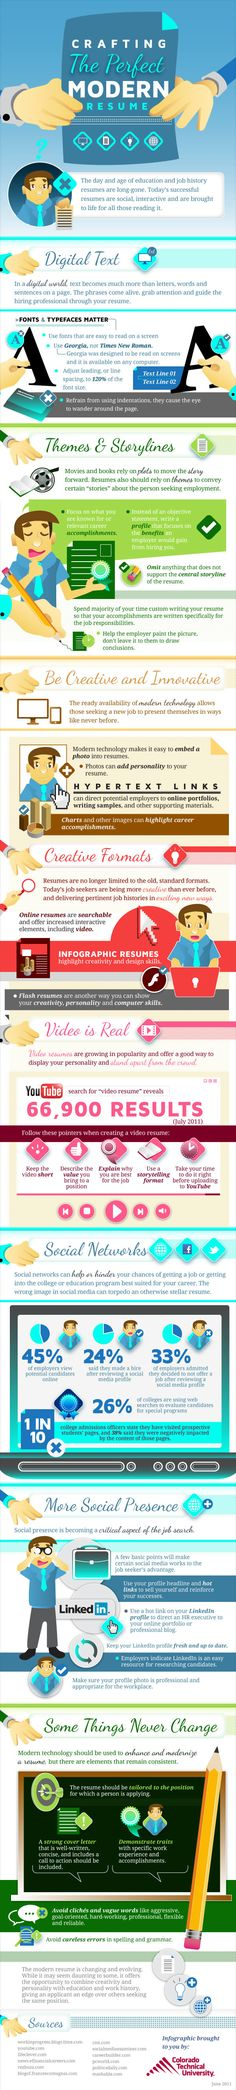 Mashable Infographic - Modern Resume